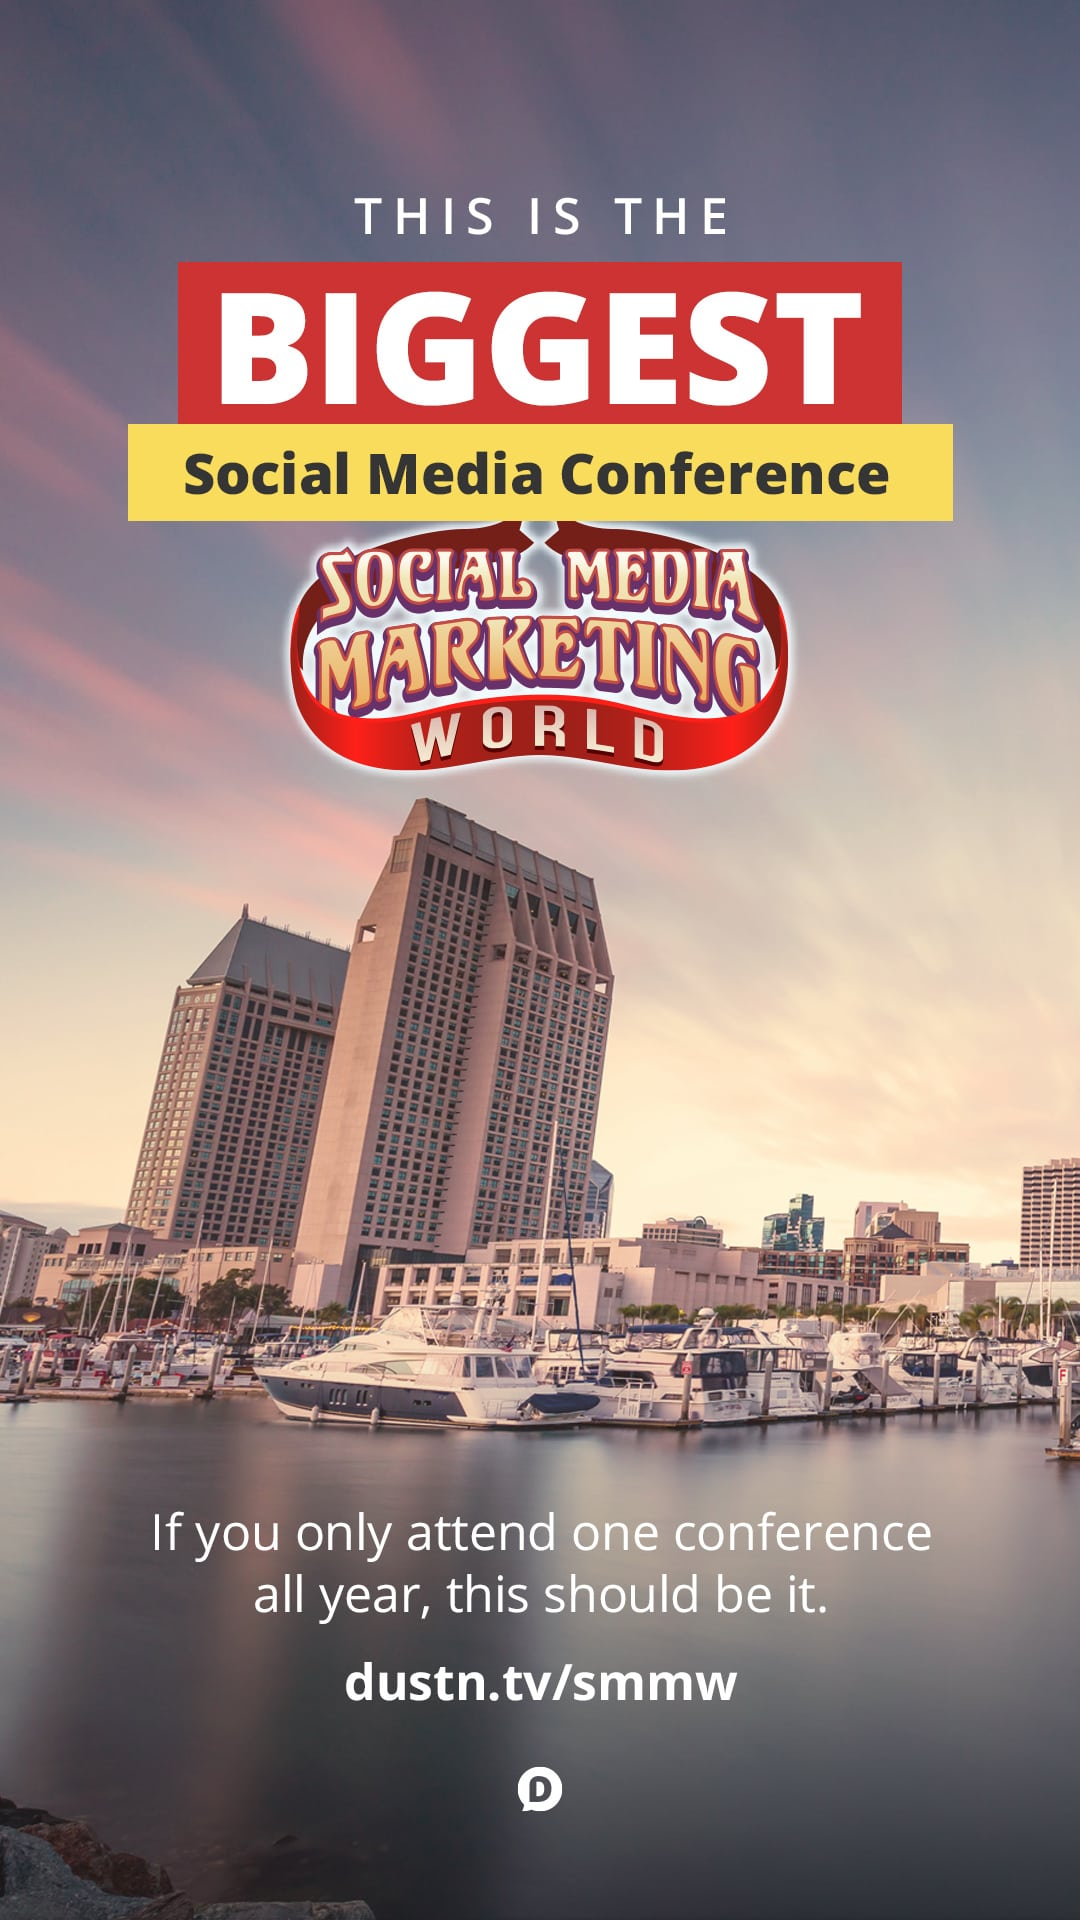 The biggest social media marketing conference in the world is about to happen. Here\'s my first-person perspective on why you need to be there and what to expect.